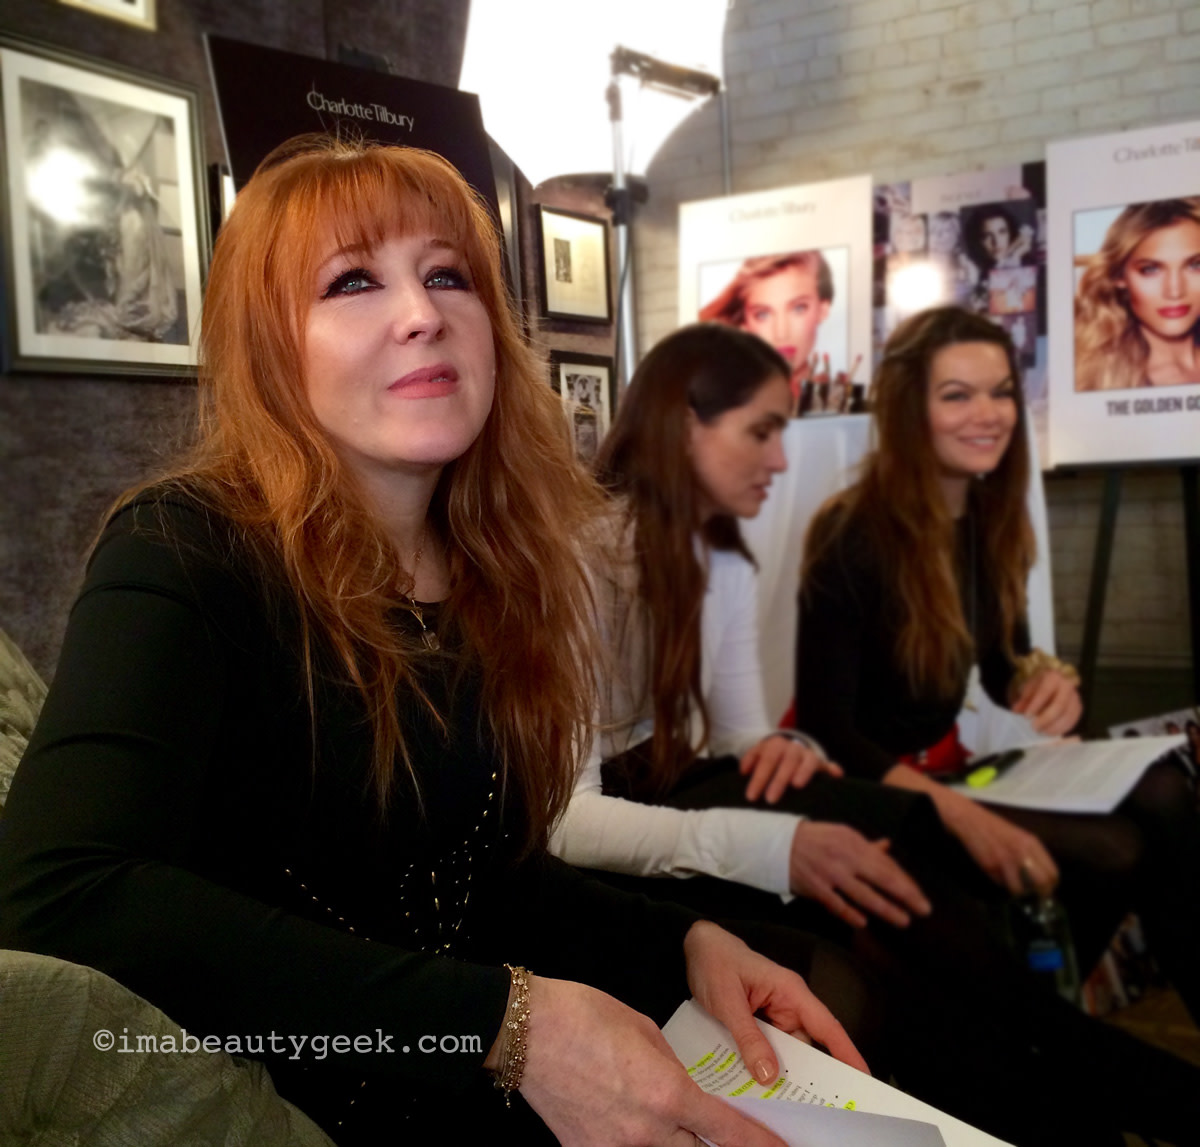 Charlotte Tilbury in Canada_Toronto press preview